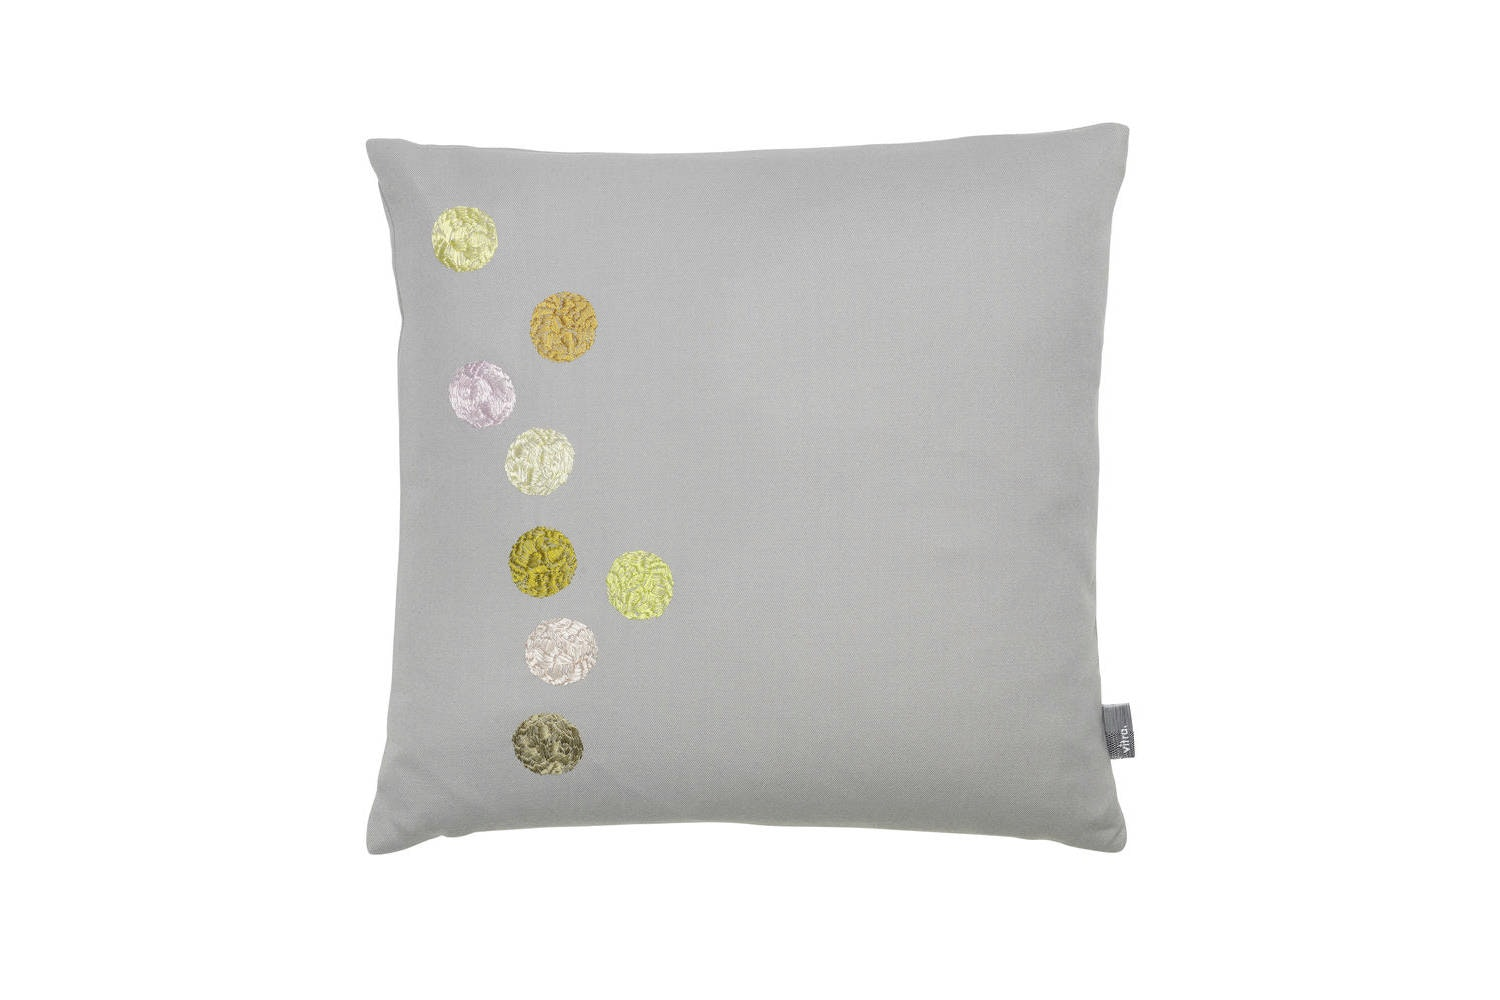 Dot Pillows by Hella Jongerius for Vitra